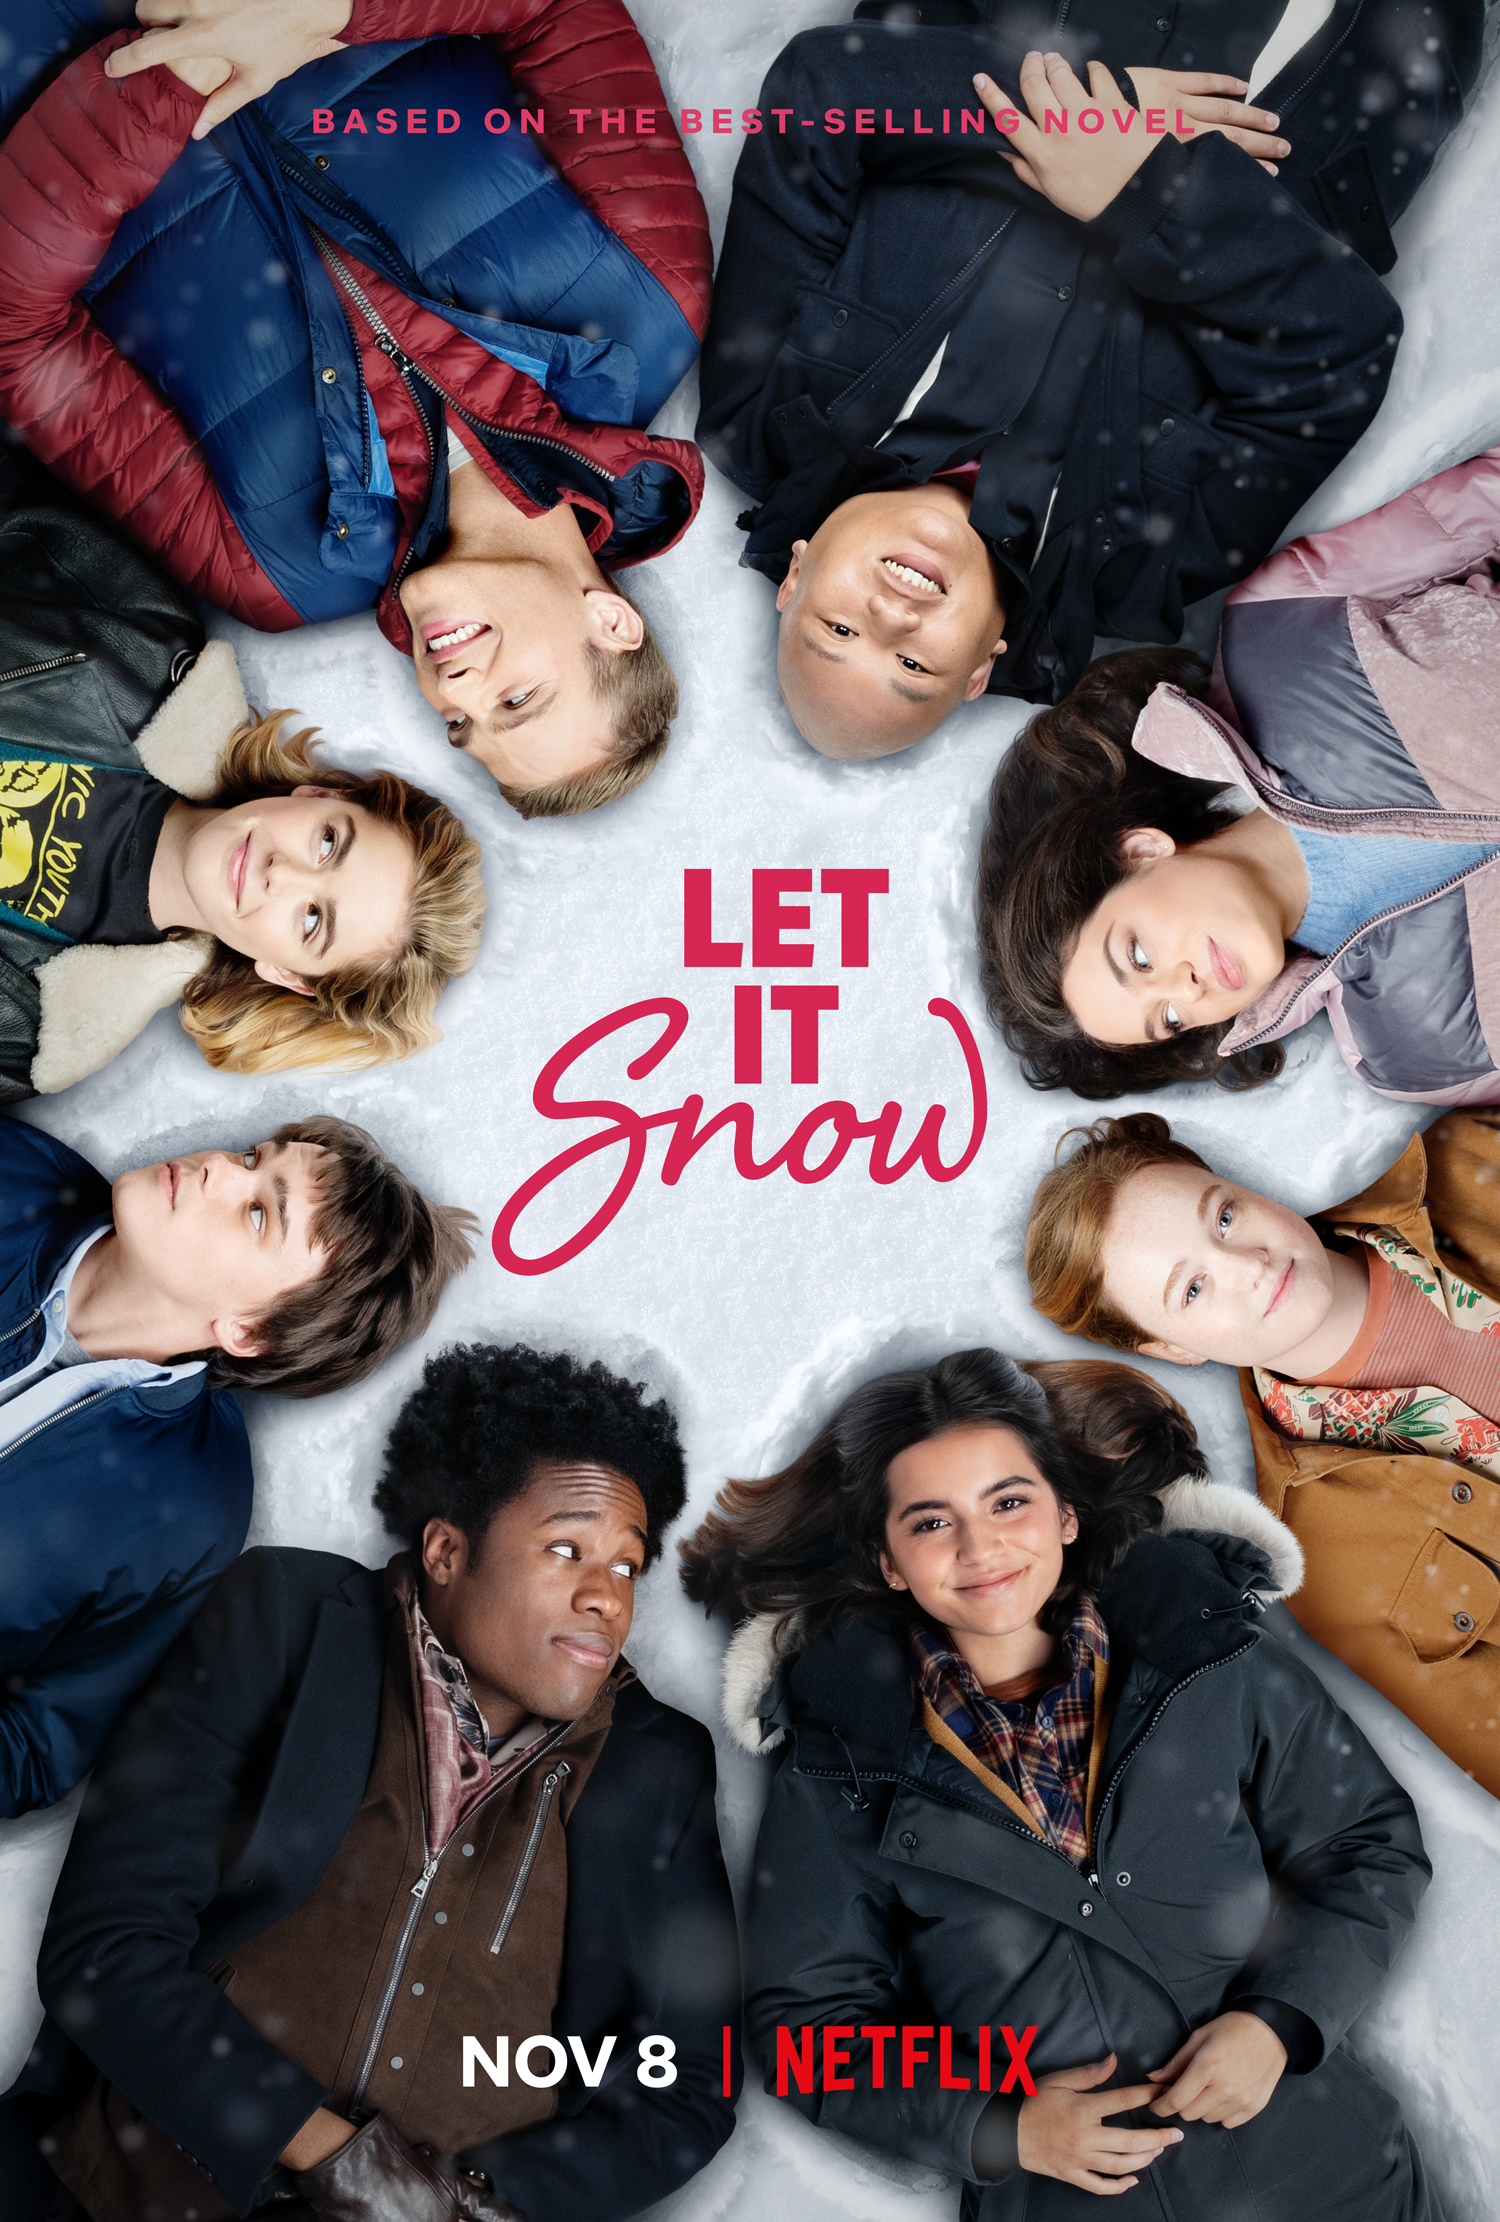 Let It Snow Poster Netflix Movie